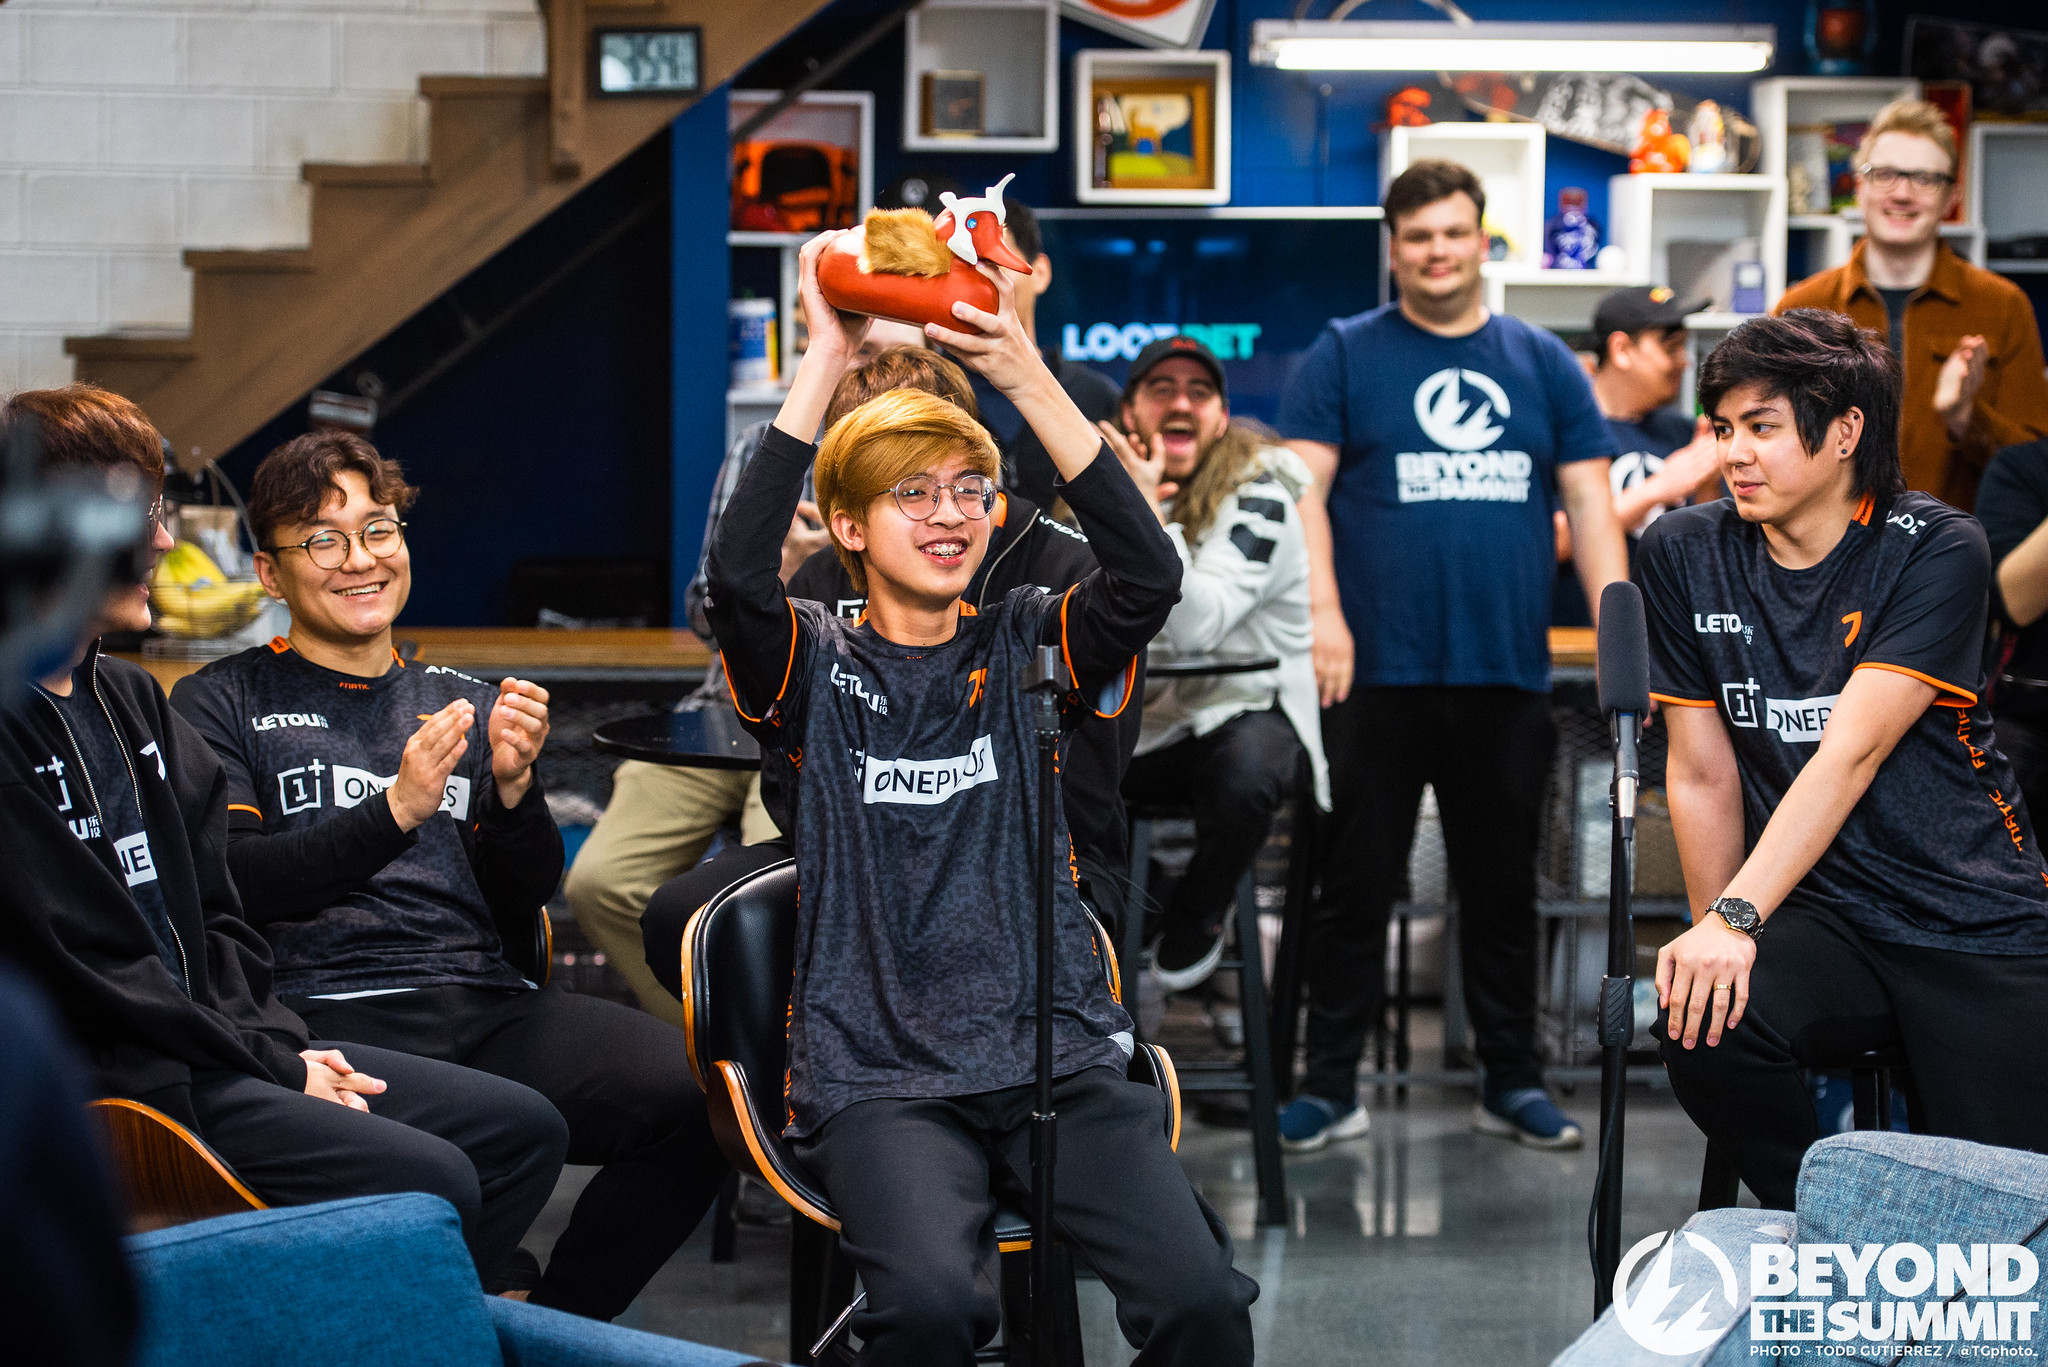 Beyond the Summit to host Pro Series for Americas and Southeast Asia